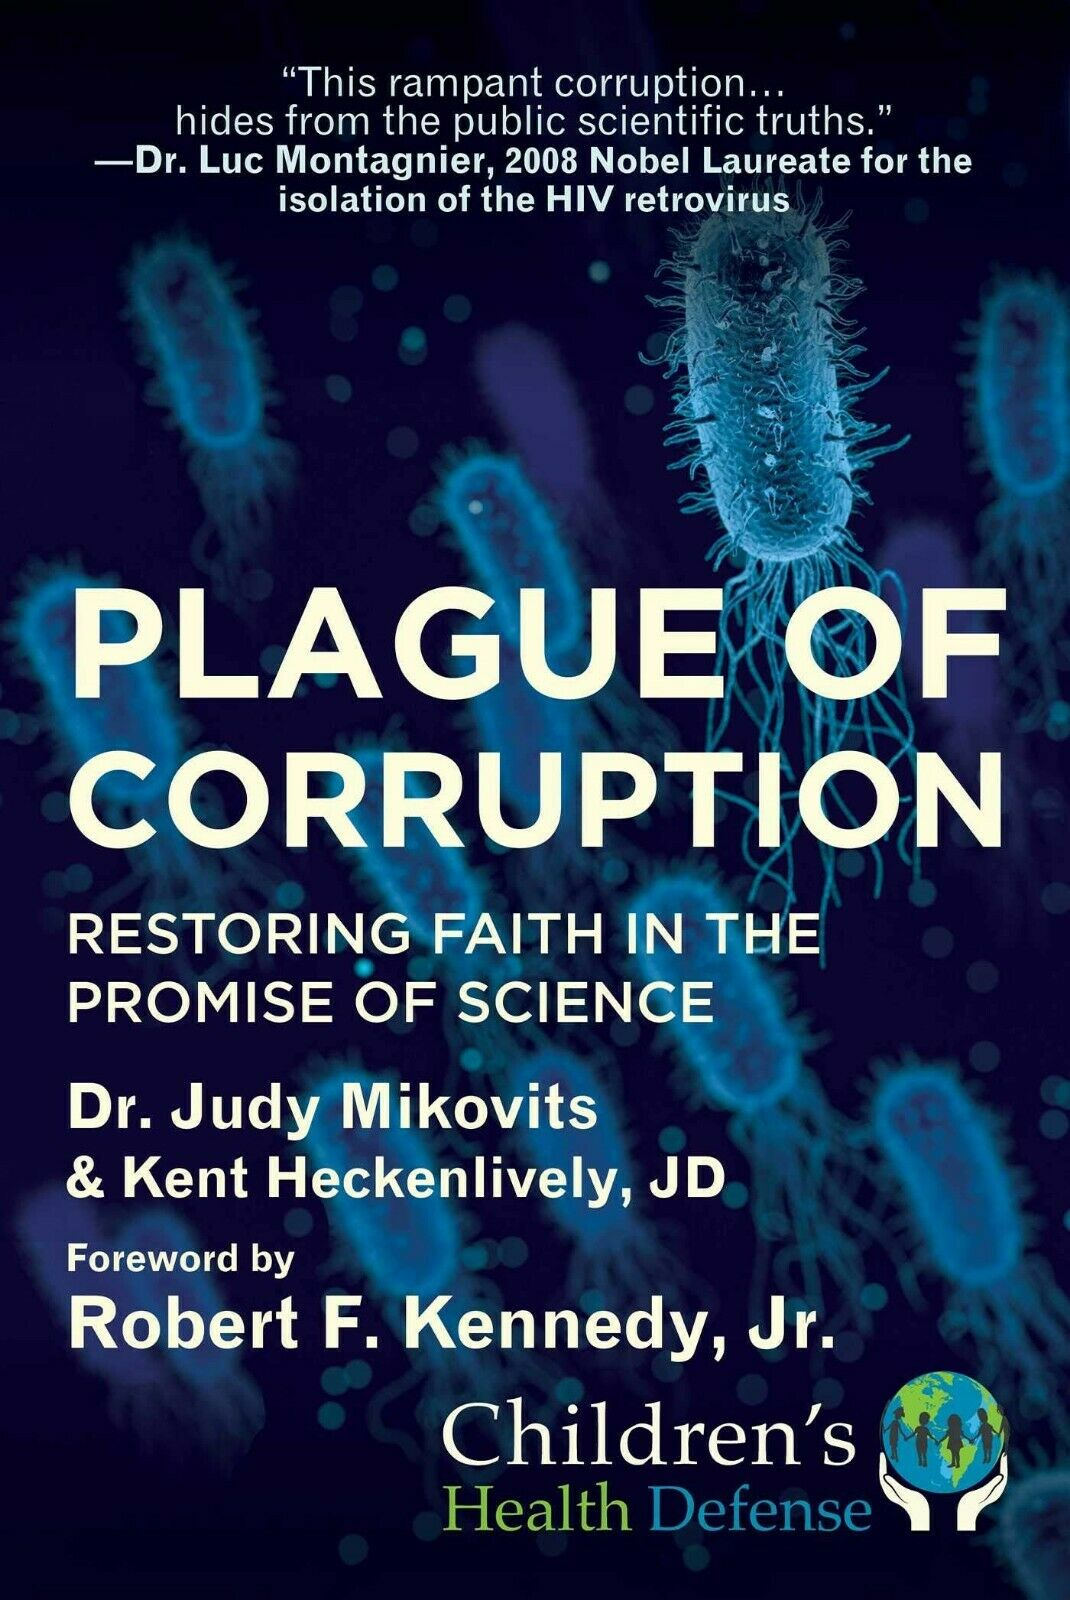 Plague of Corruption: Restoring Faith in the Promise of Science Hardcover 2